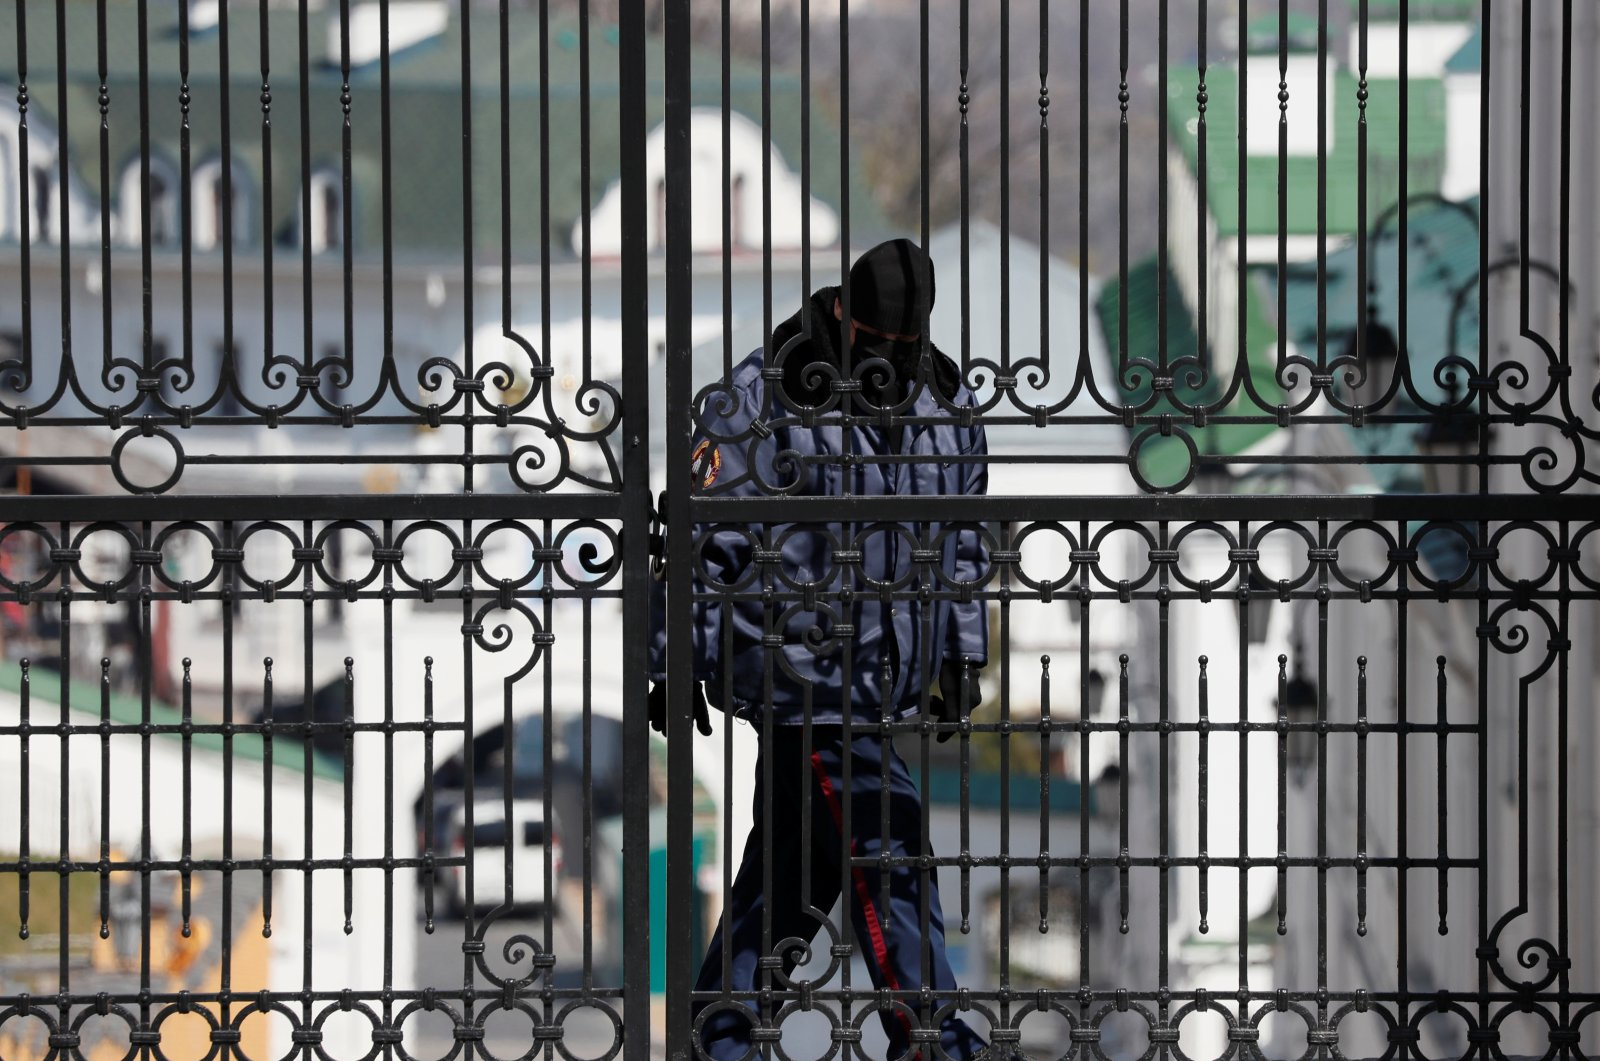 A security guard wearing a protective face mask is seen at the gate of Kyiv Pechersk Lavra monastery during the COVID-19 outbreak in Kyiv, Ukraine, Thursday, April 9, 2020. (Reuters Photo)